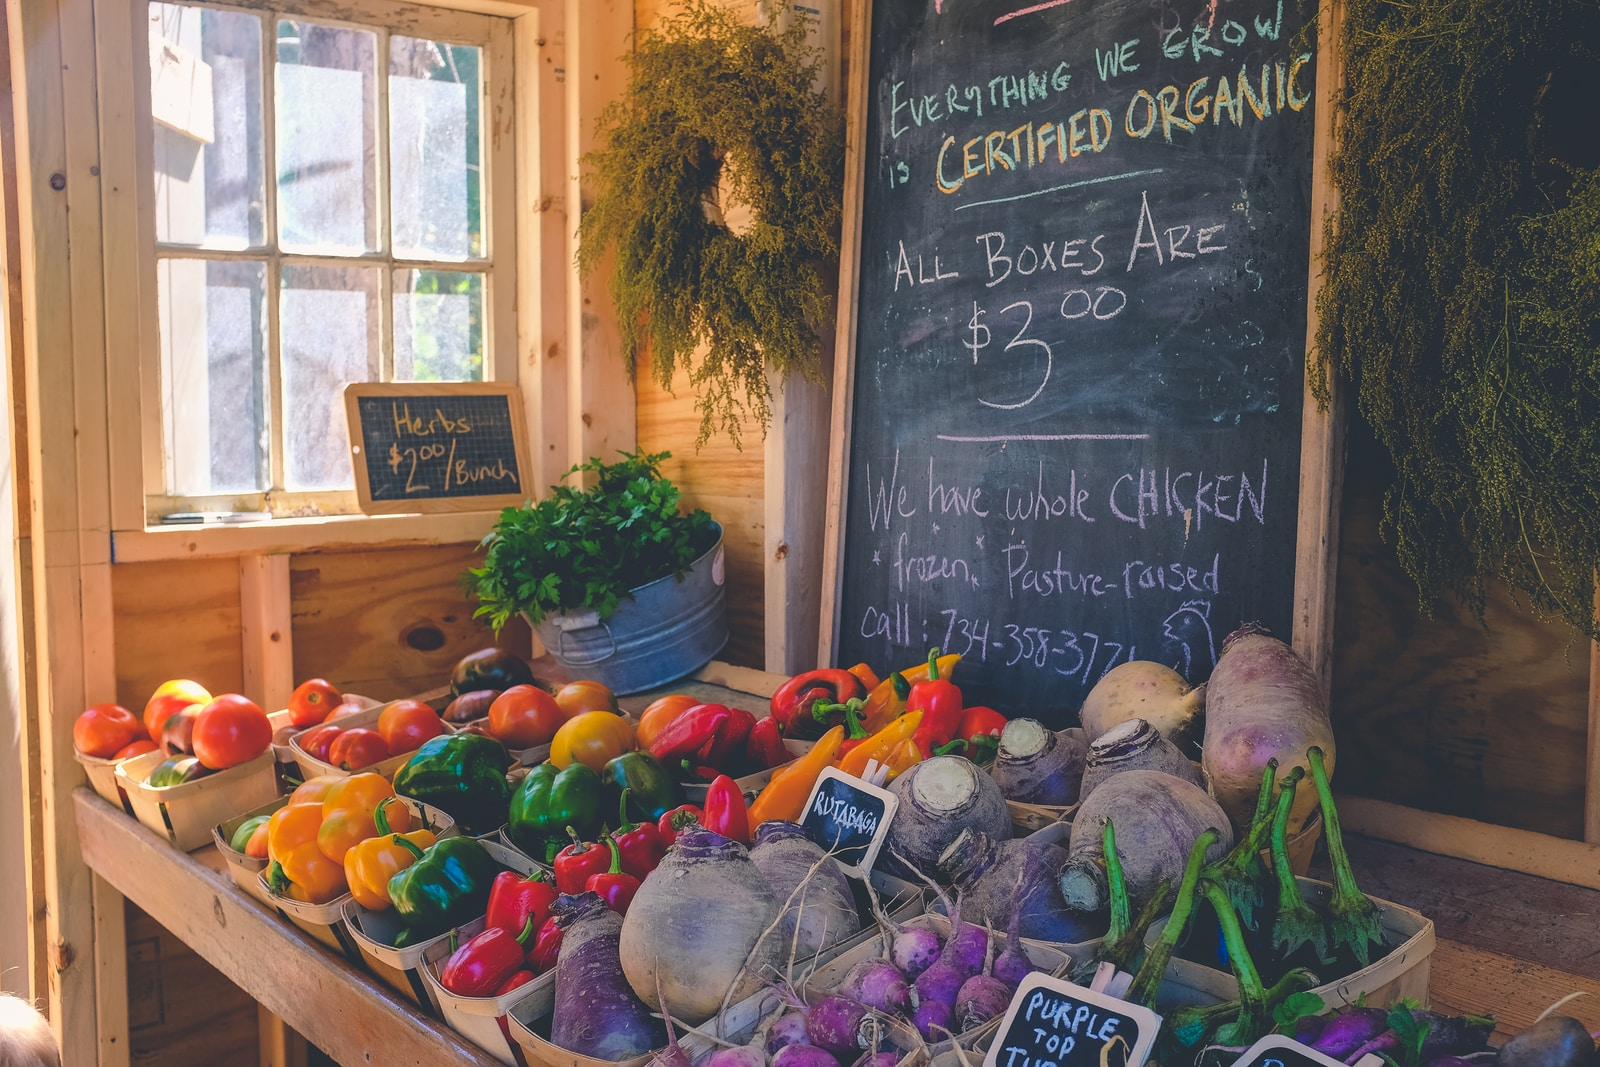 health food store with a variety of vegetables on display